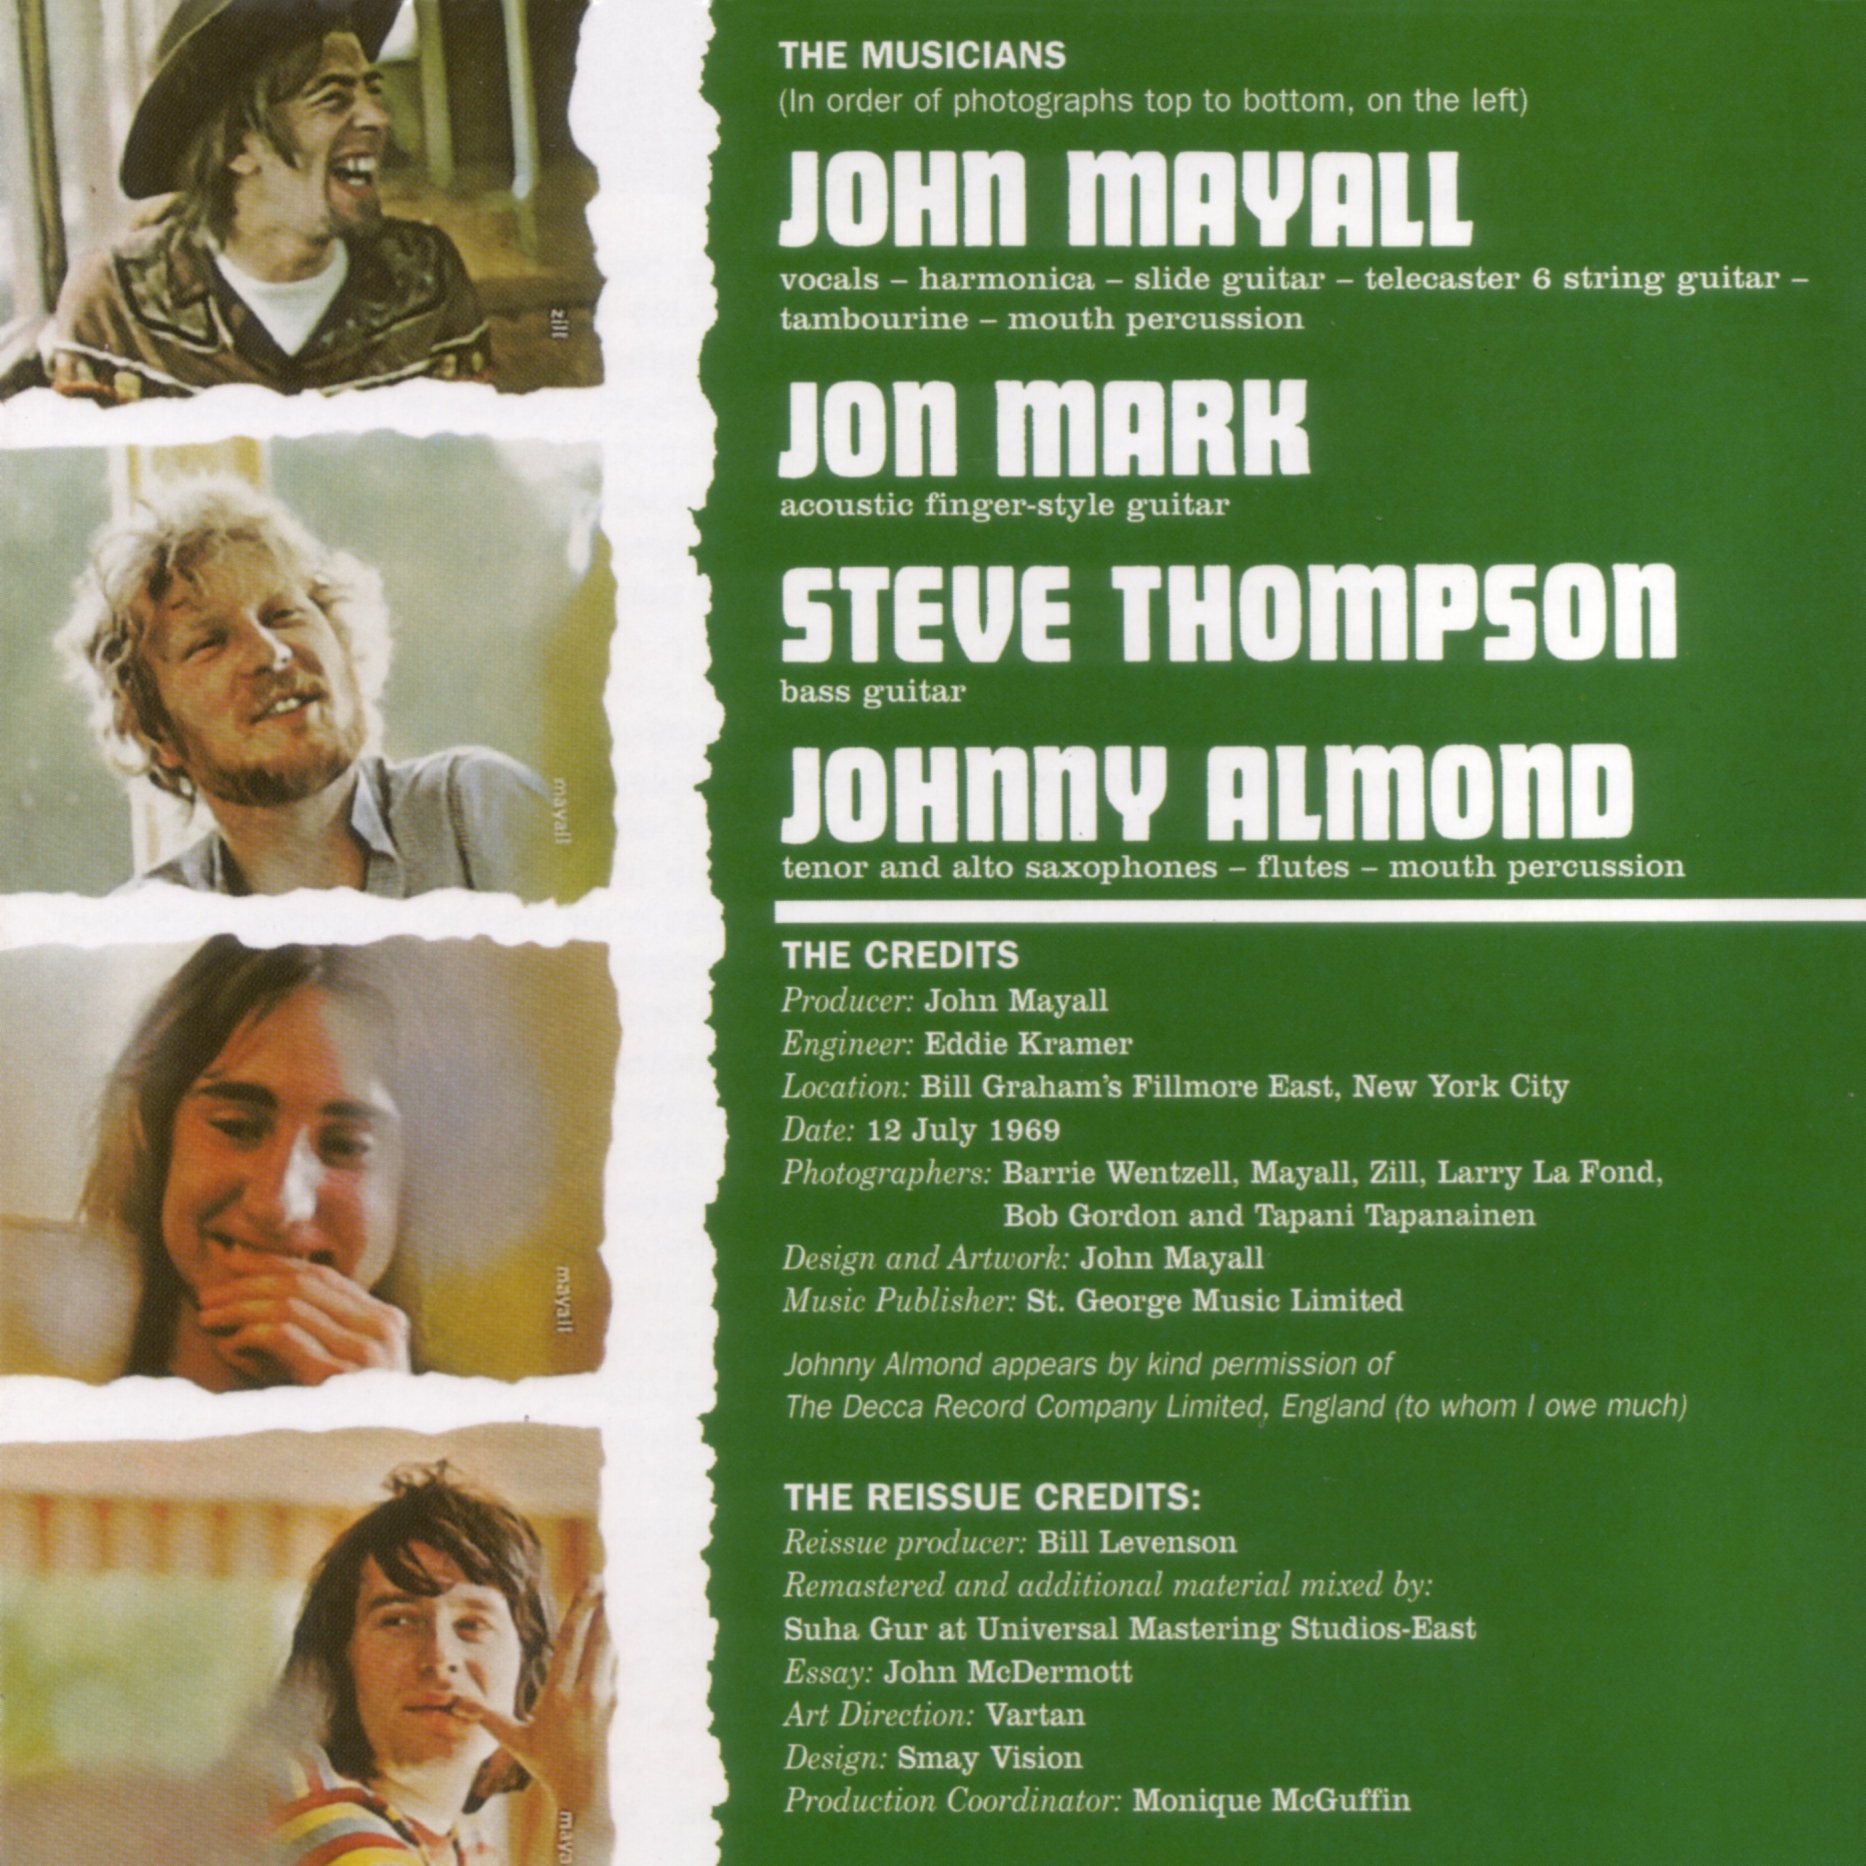 598947981_john_mayall___the_turning_point___inside